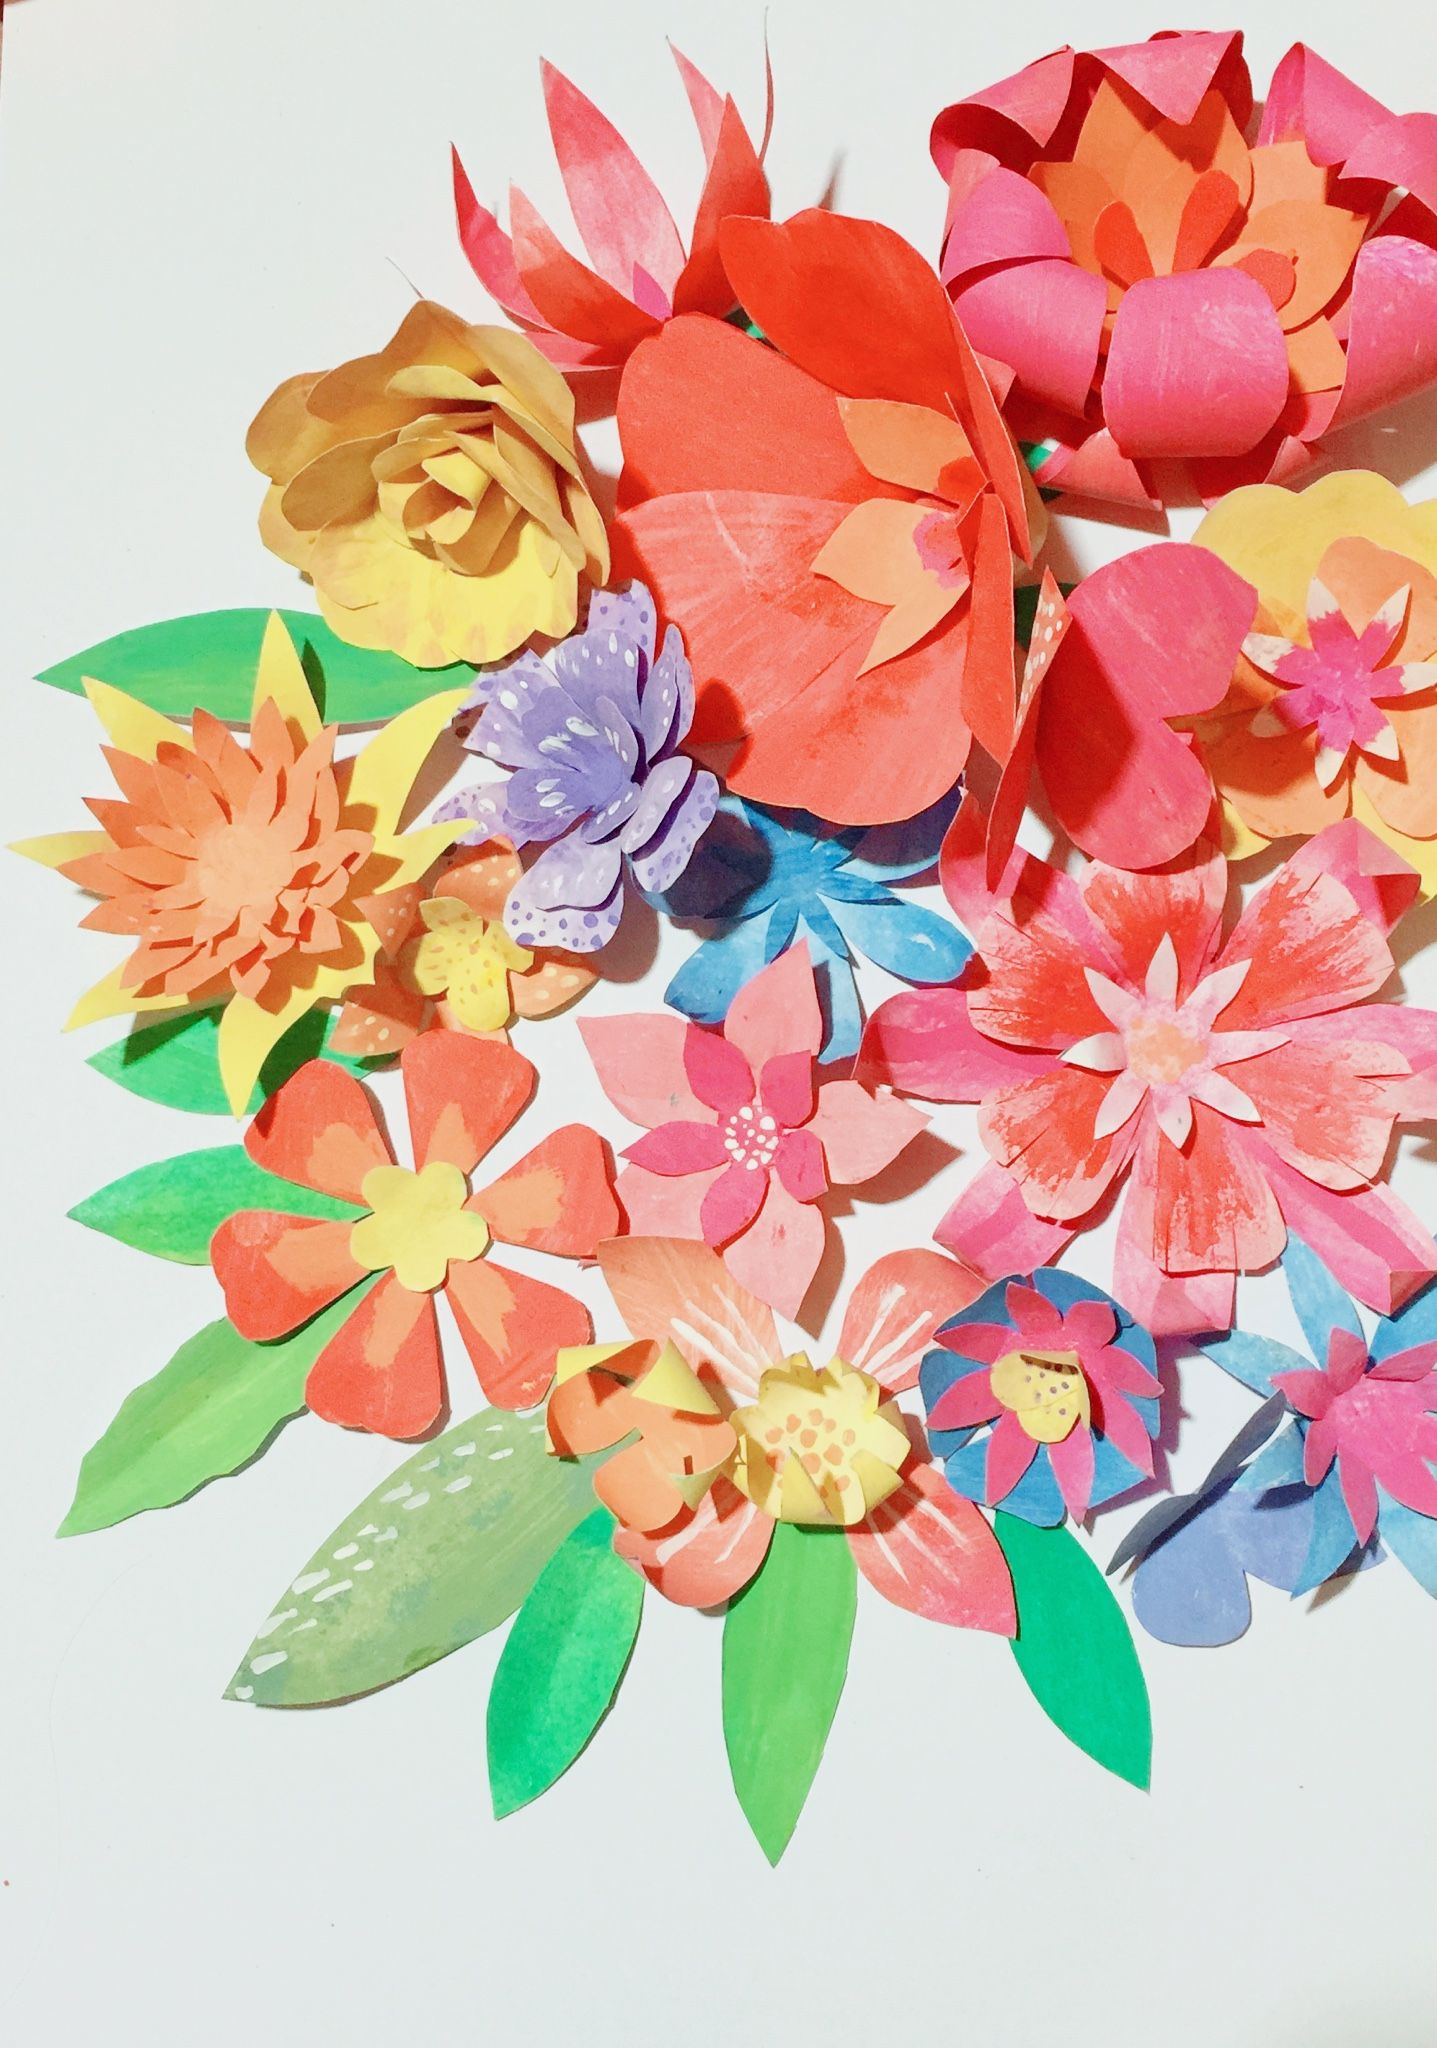 Paper Flowers Diy Tutorial And Templates At Happythought Paper